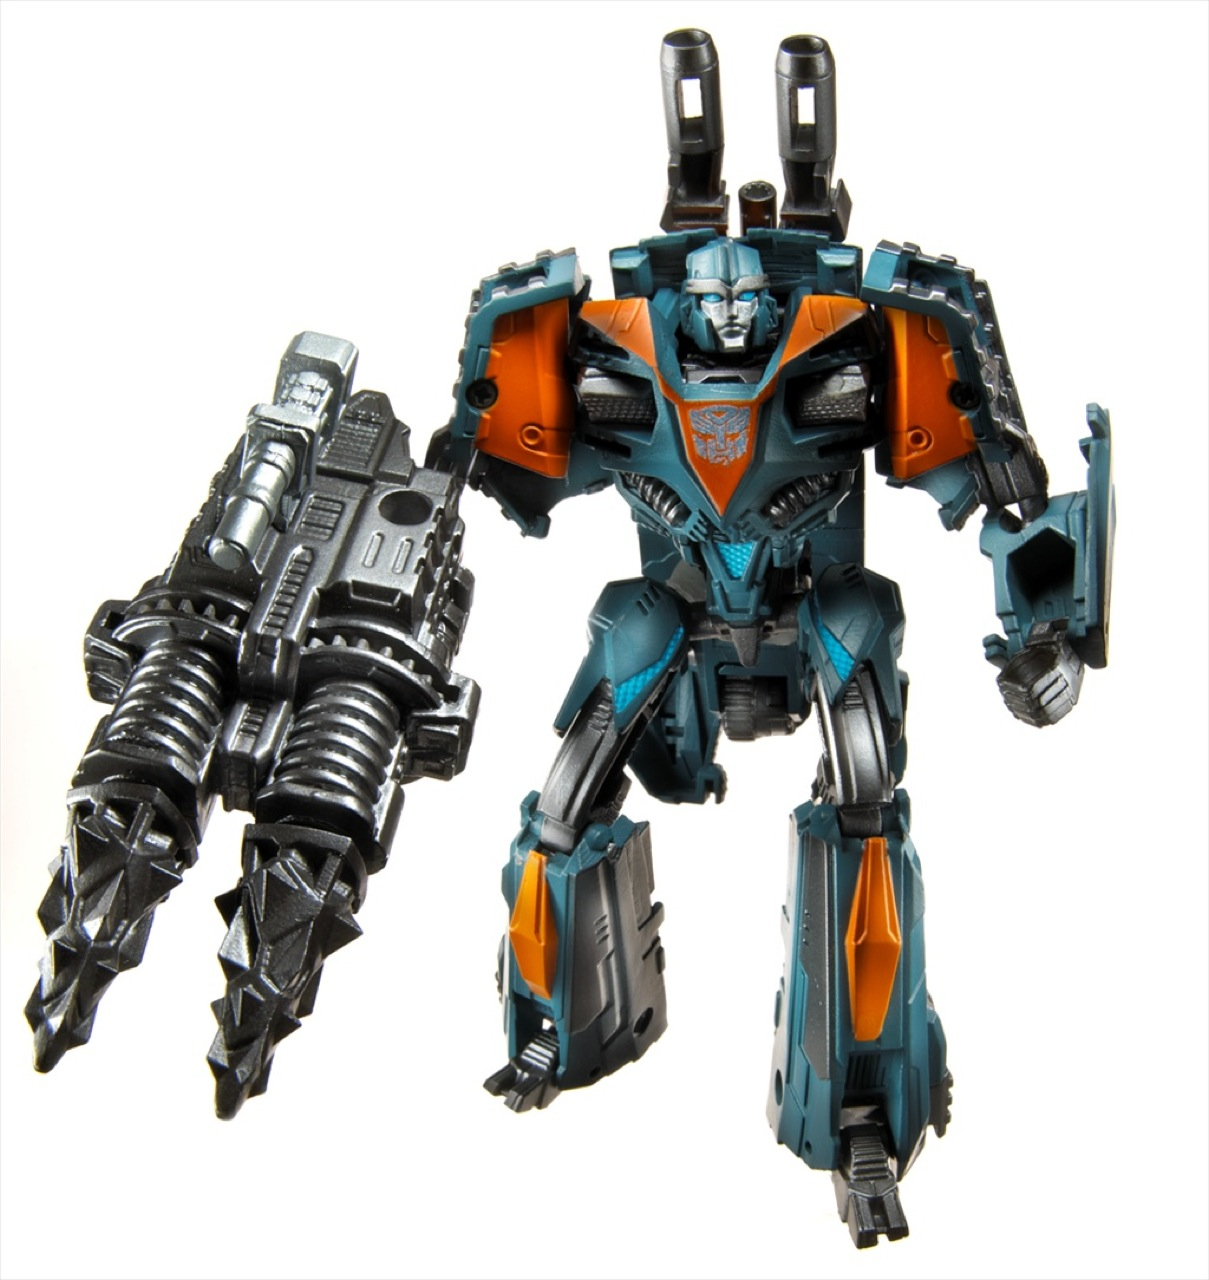 2012 Transformers Generations Official Hasbro Product ...